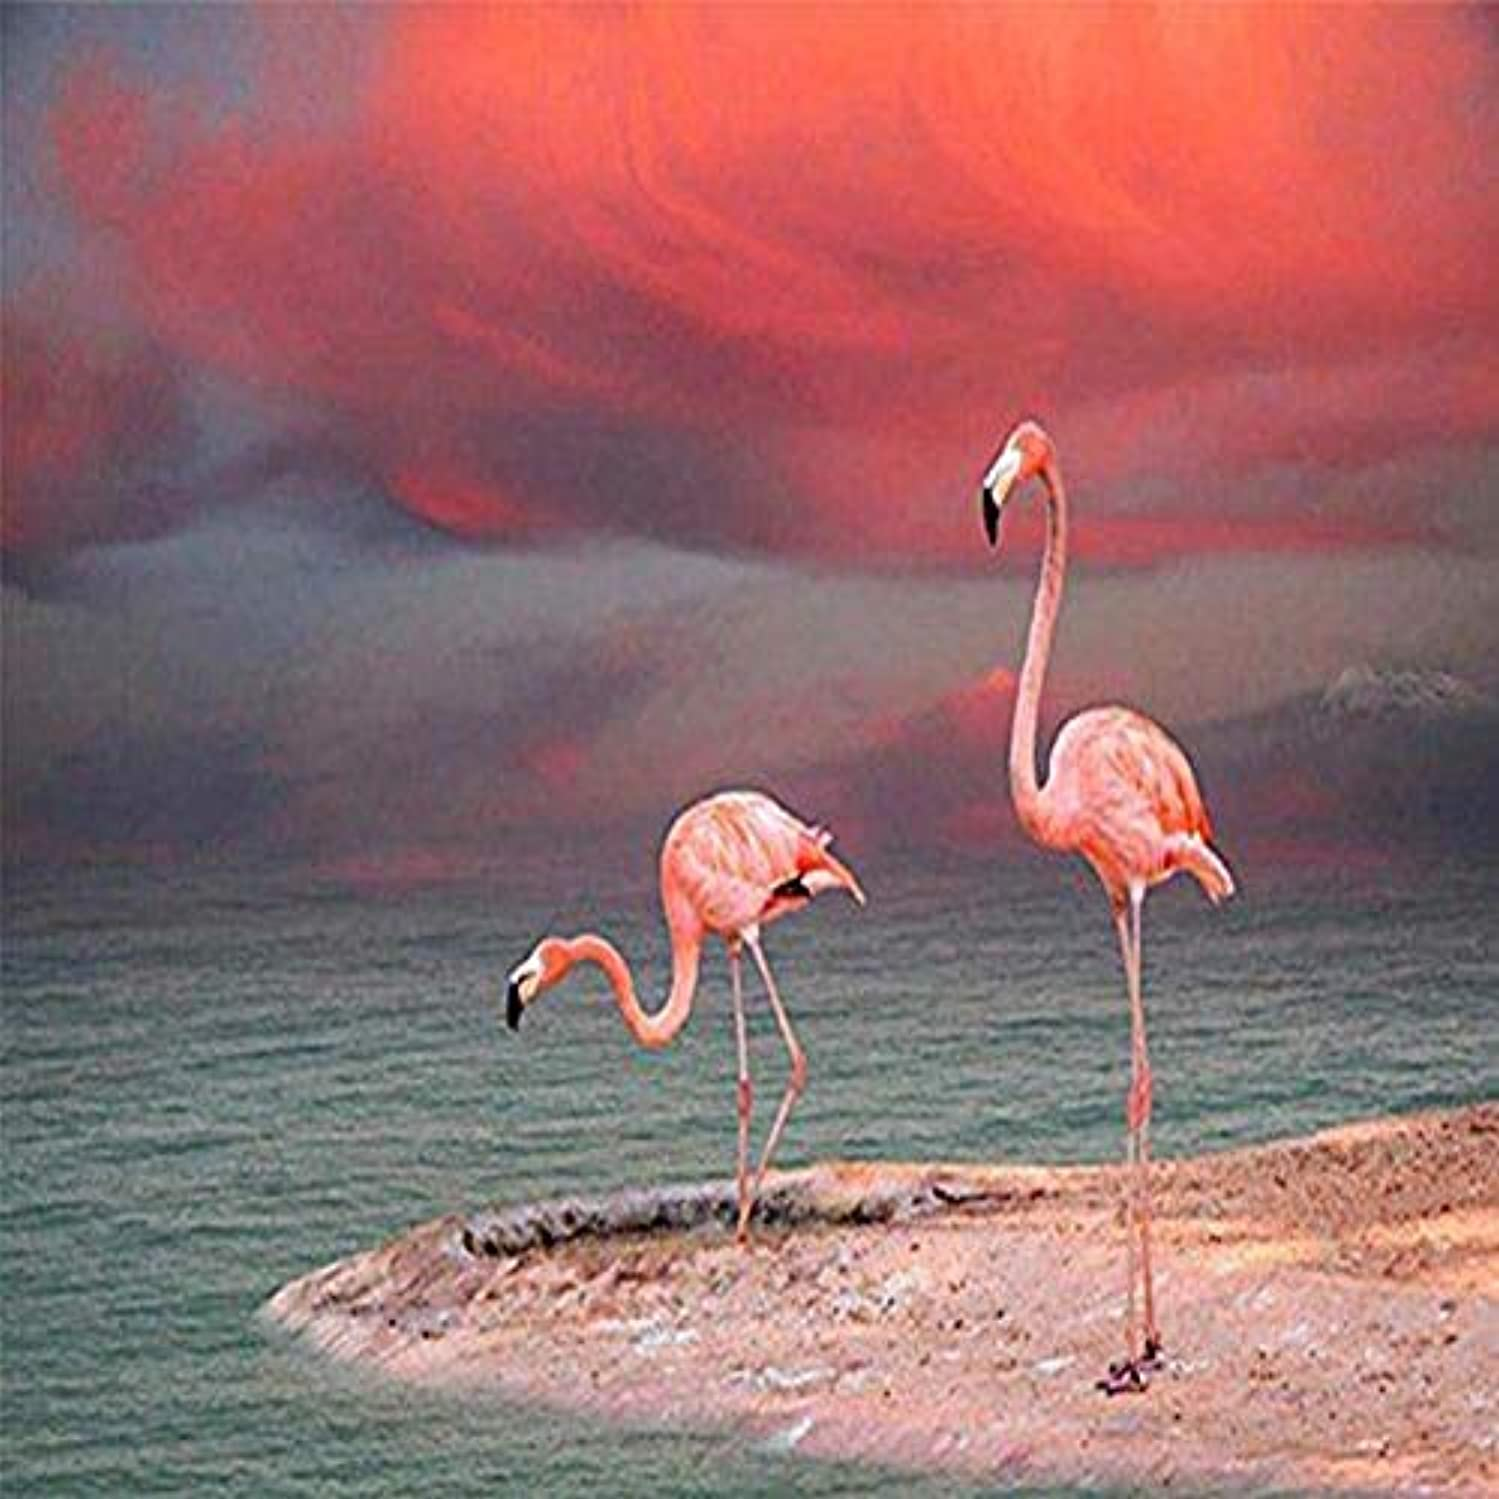 DIY 5D Diamond Painting by Number Kits, Crystal Rhinestone Diamond Embroidery Paintings Pictures Arts Craft for Home Wall Decor, Full Drill,Seaside Flamingos 12X12 inch